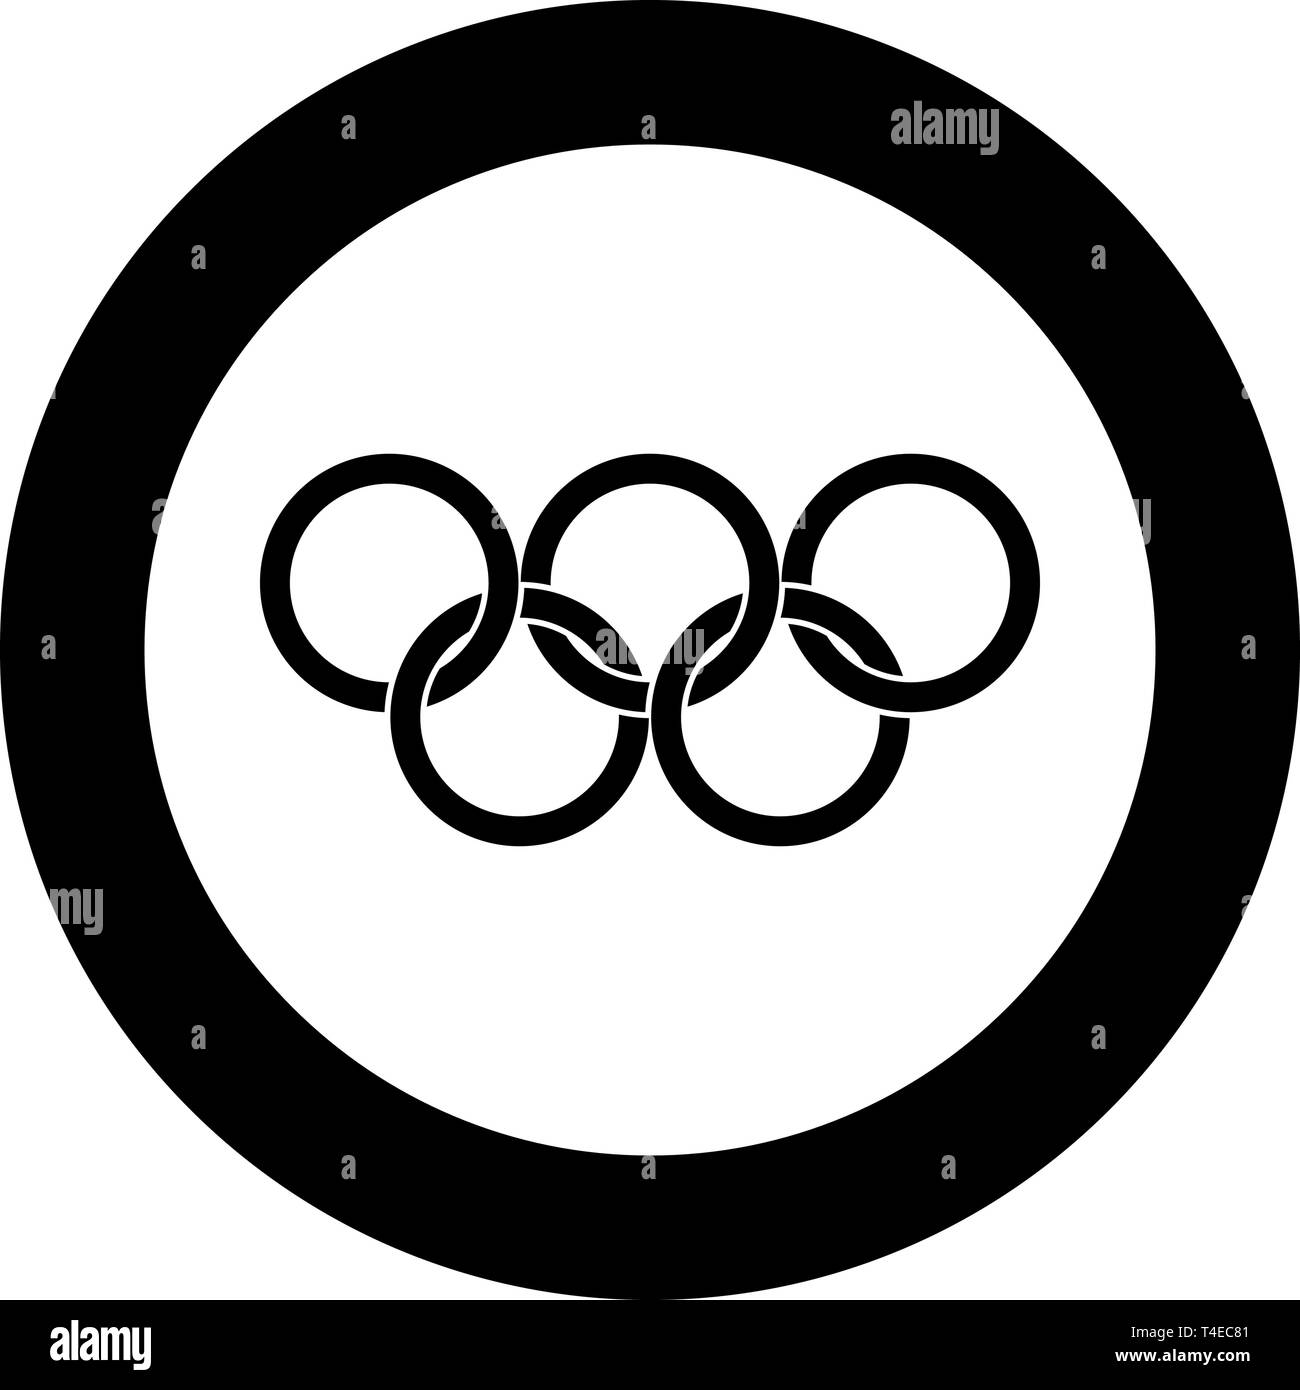 Olympic rings Five Olympic rings icon in circle round black color vector illustration flat style simple image - Stock Vector